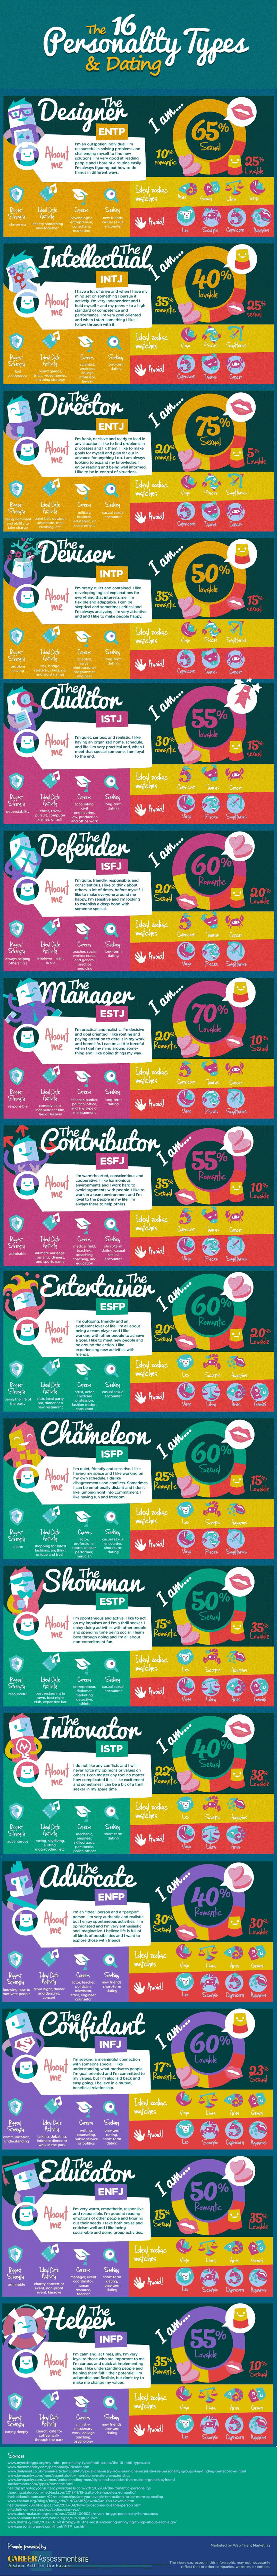 Which Dating Personality Types Women Should Date Infographic